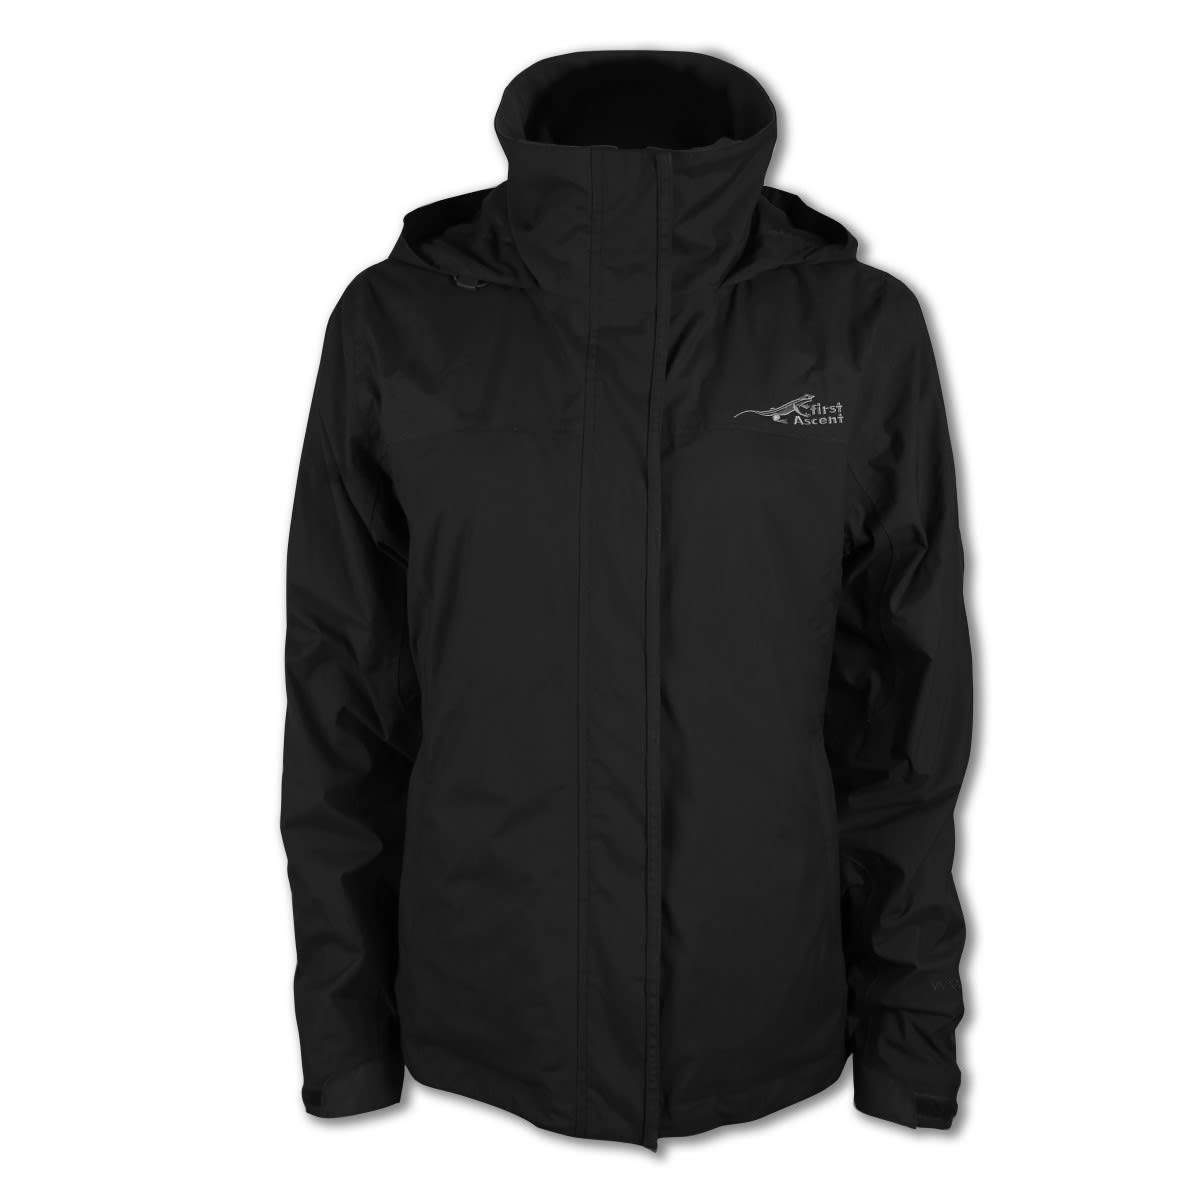 First Ascent Women's Discovery Waterproof Jacket